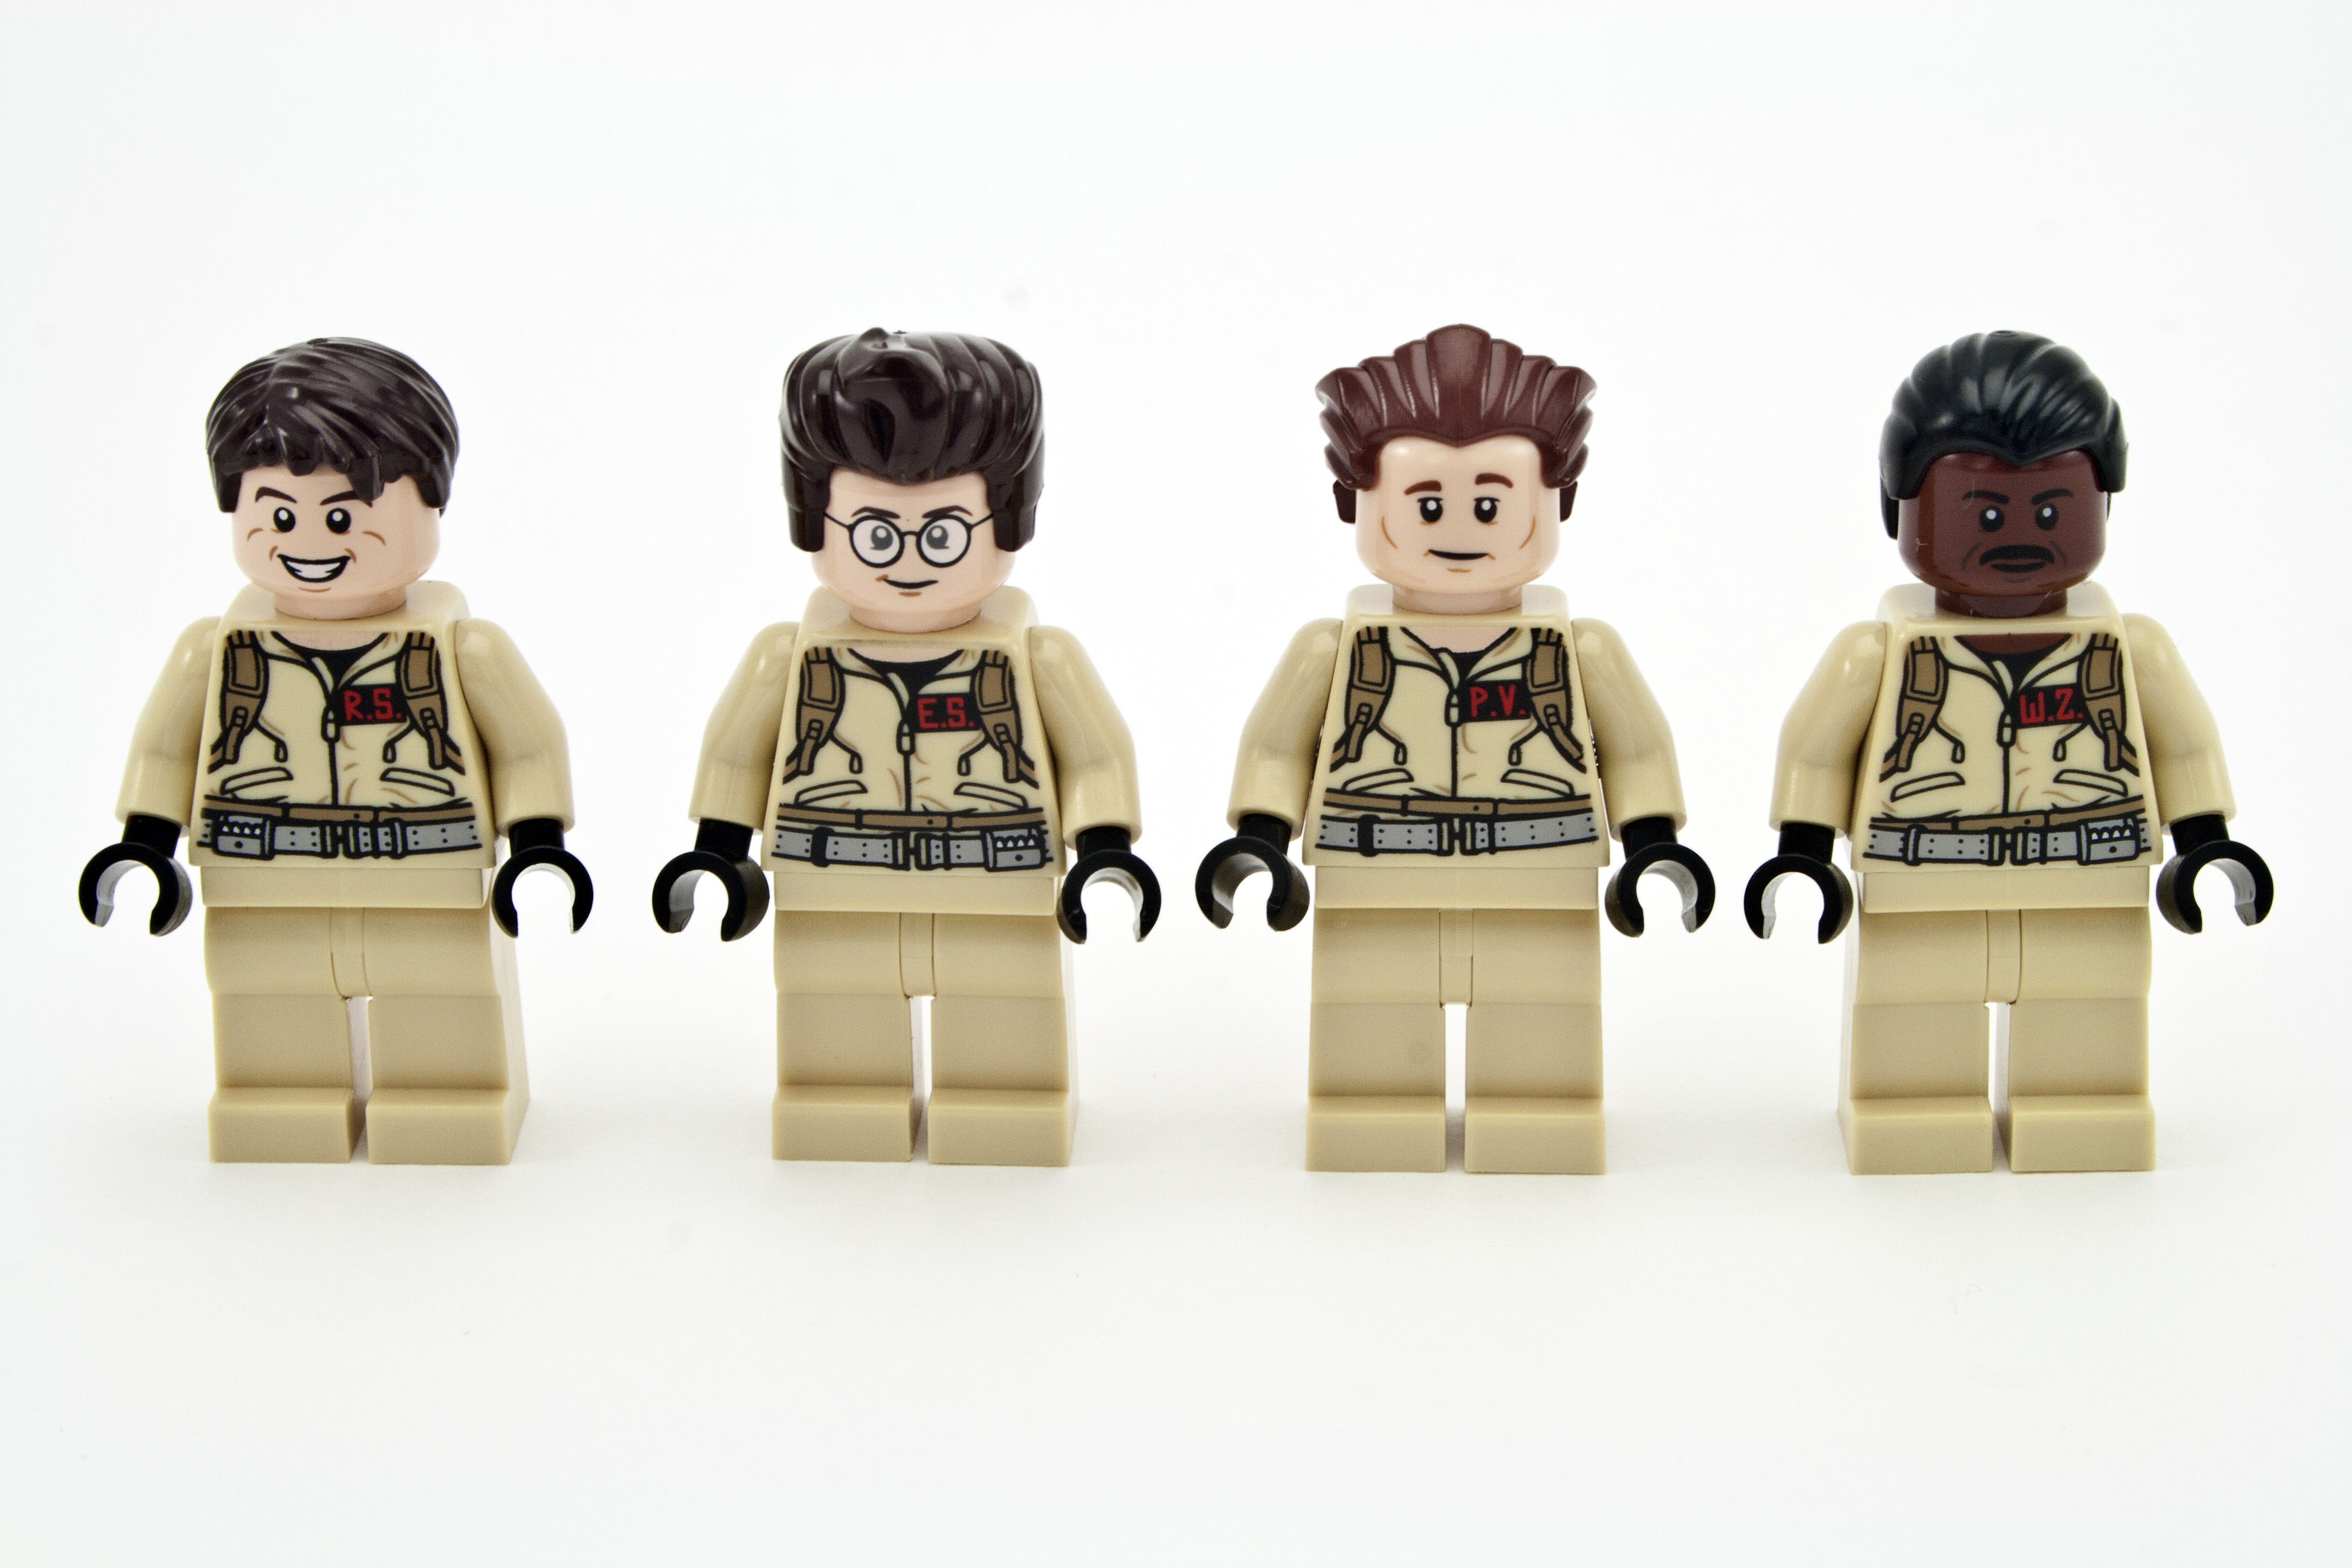 Review Lego 21108 Ghostbusters Ecto 1 Rebrickable Build With 75828 Ampamp 2 Minifigs